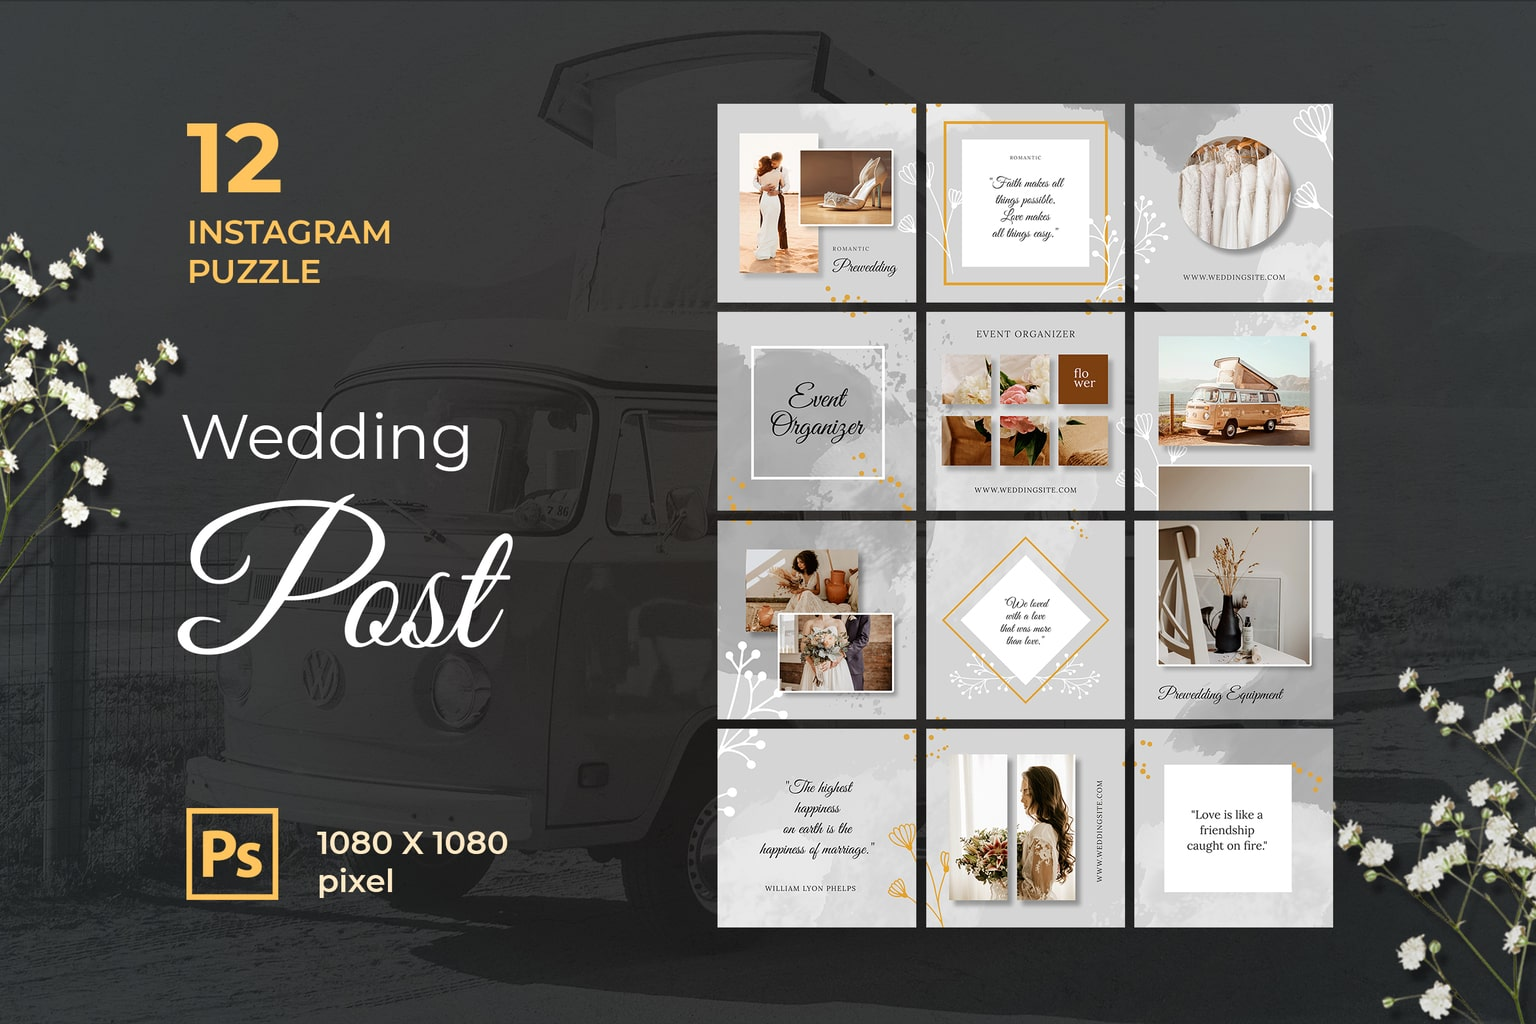 Instagram Puzzle - Wedding Post